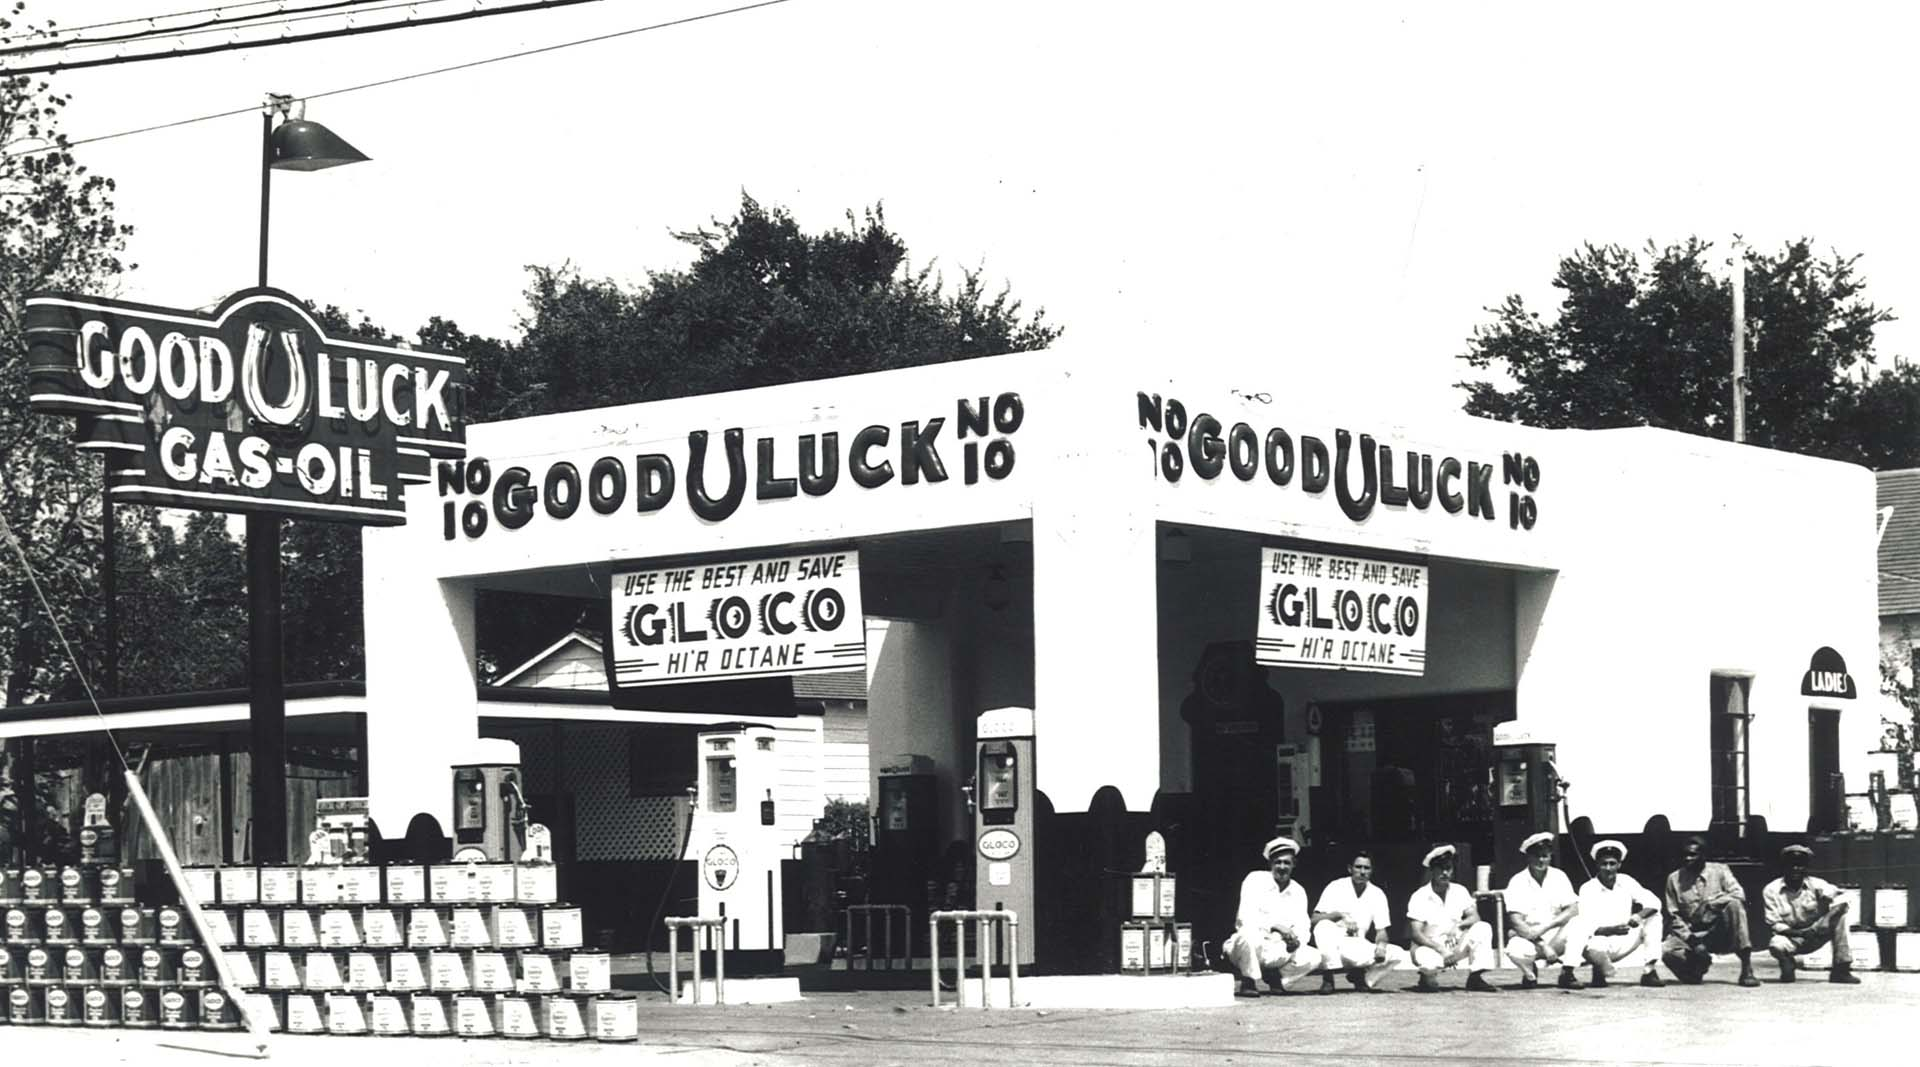 /Home_2_Good_Luck_Oil_Company_Service_GLOCO_Petroleum_Petroliana_Ethyl_Gasoline_Fuel_Signs_Collectables_Store_Museum_History_Dallas_Fort_Worth_Texas_Gas_Drepression_Era_Art_Deco_Architecture.jpg